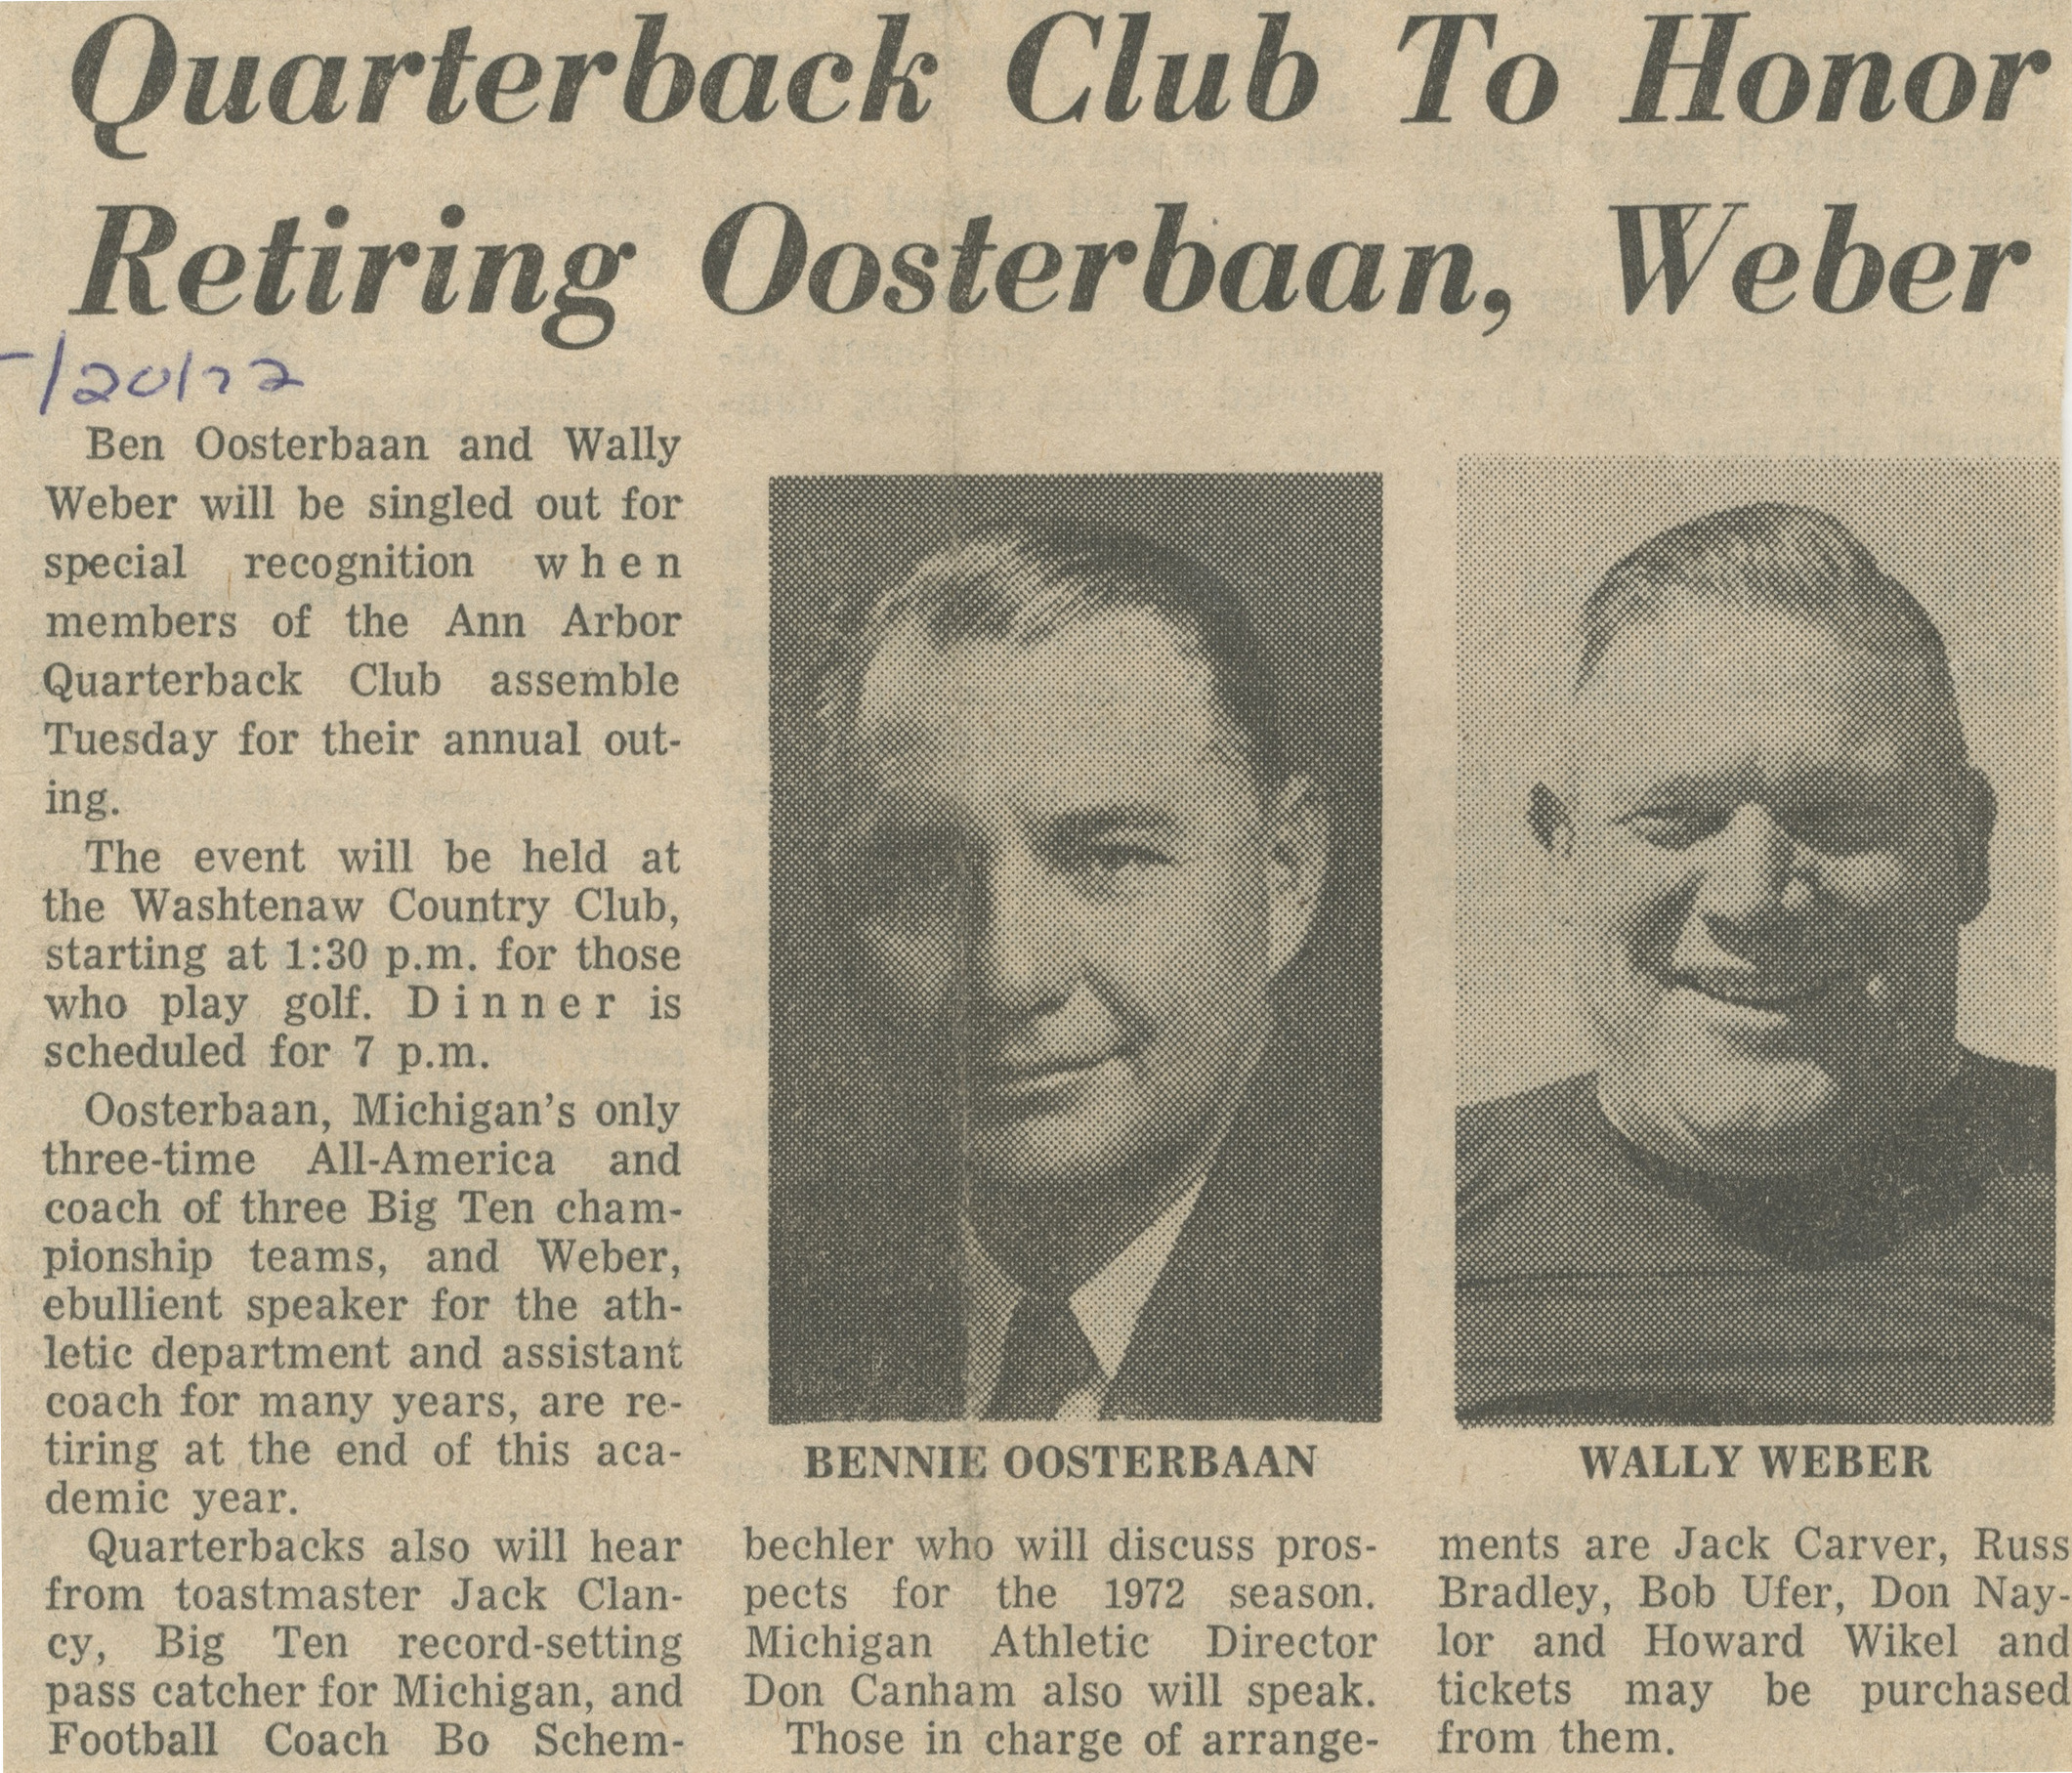 Quarterback Club To Honor Retiring Oosterbaan, Weber image